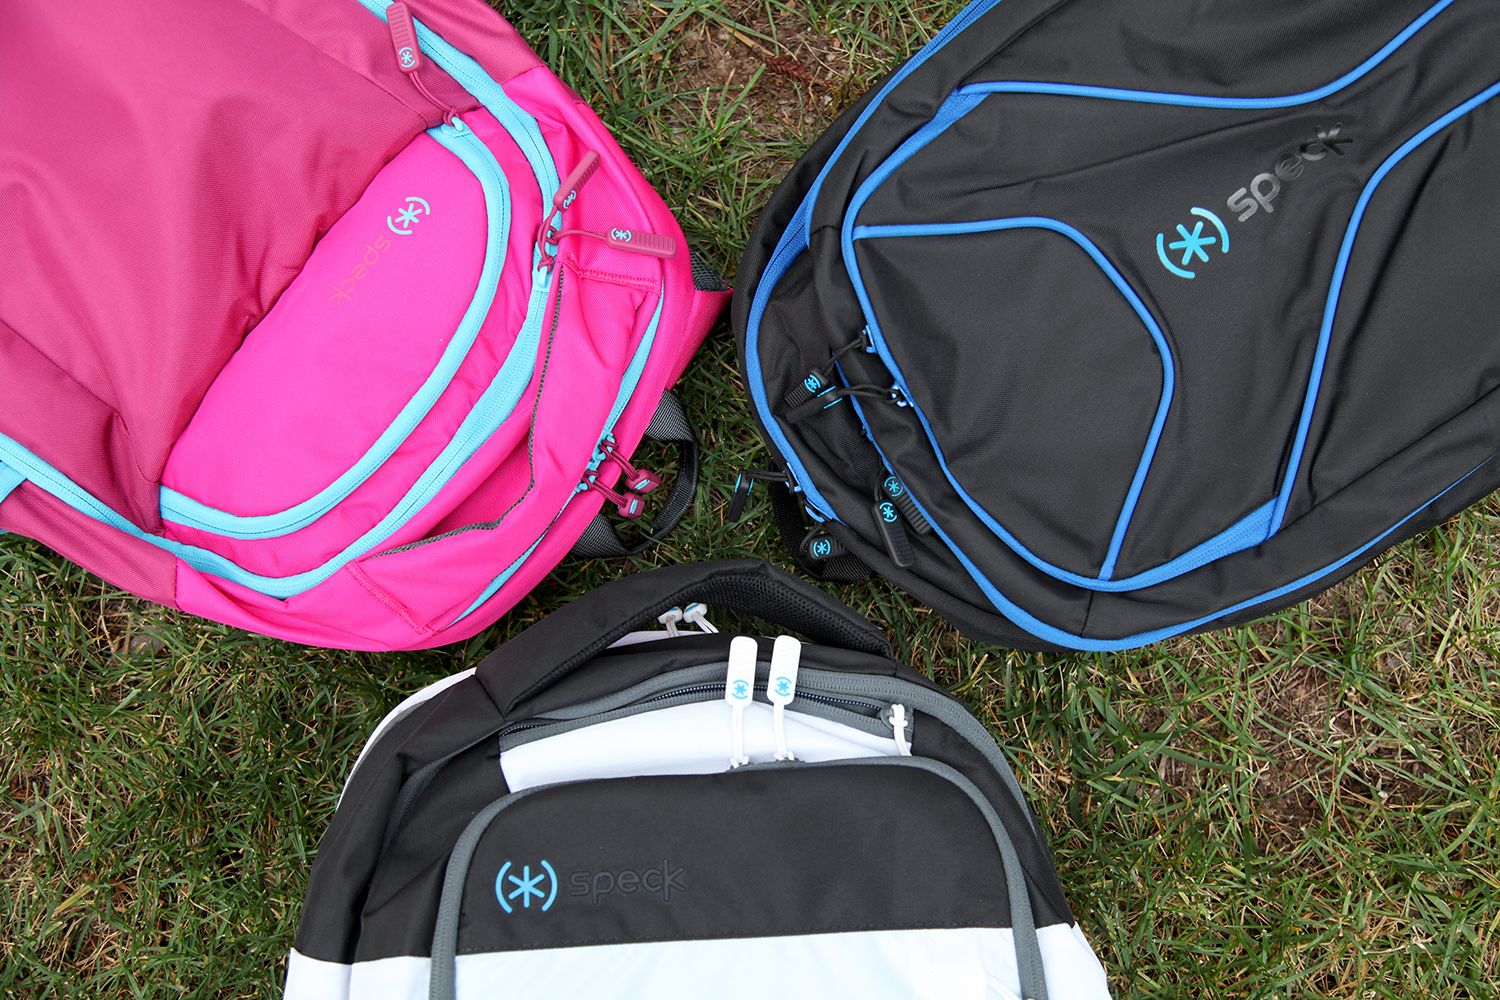 Speck backpacks